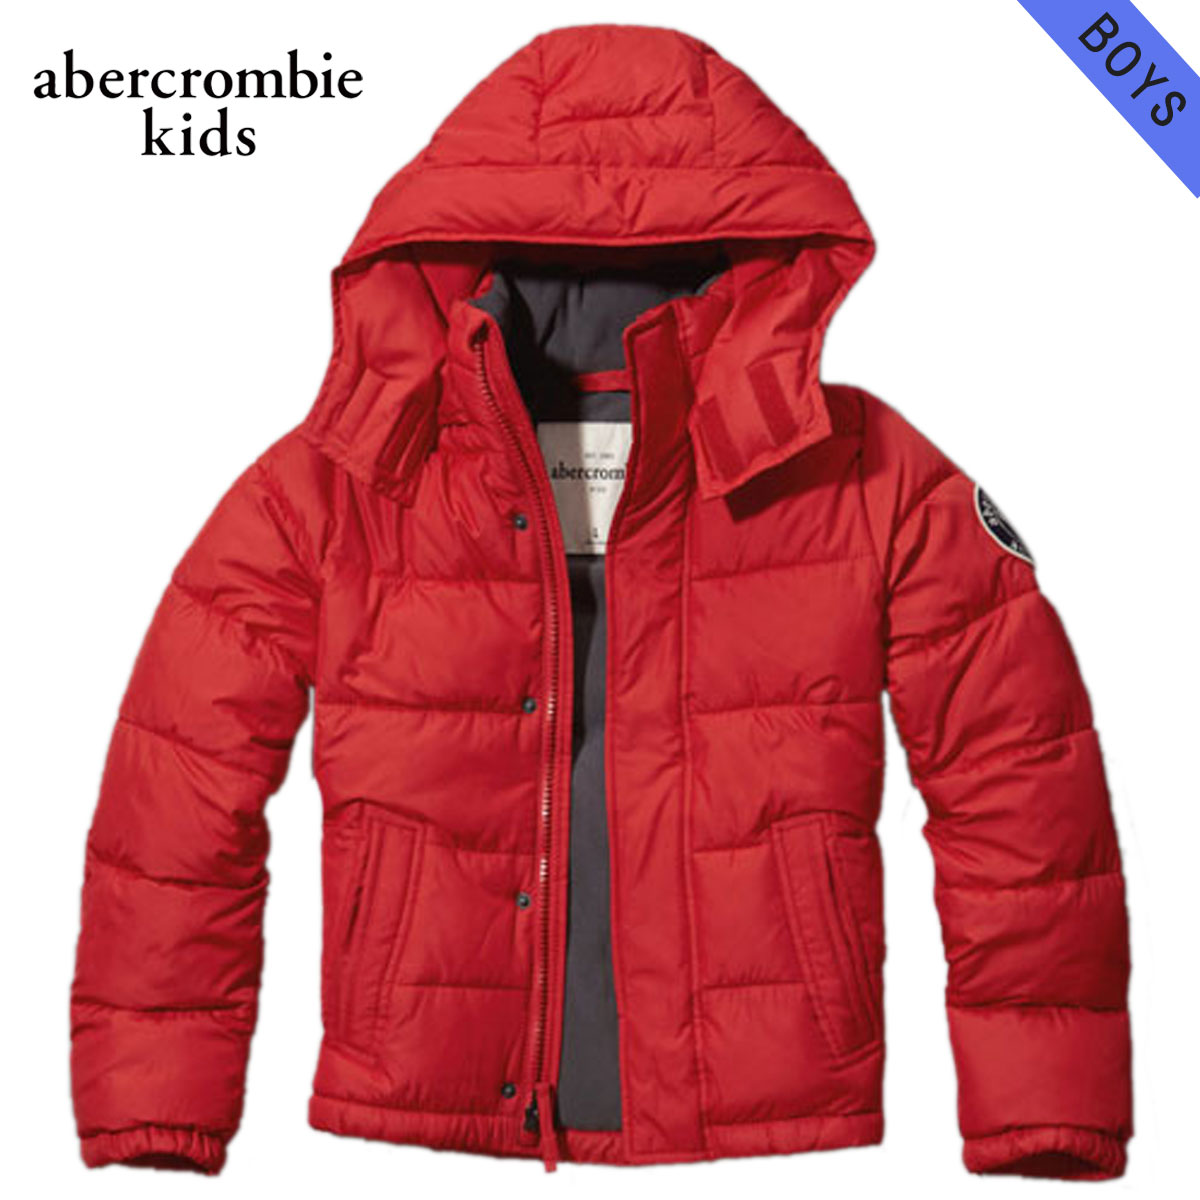 20%OFFセール 【販売期間 11/3 20:00~11/12 9:59】 アバクロキッズ AbercrombieKids 正規品 子供服 ボーイズ アウタージャケット classic puffer jacket 232-716-0112-050 D00S20